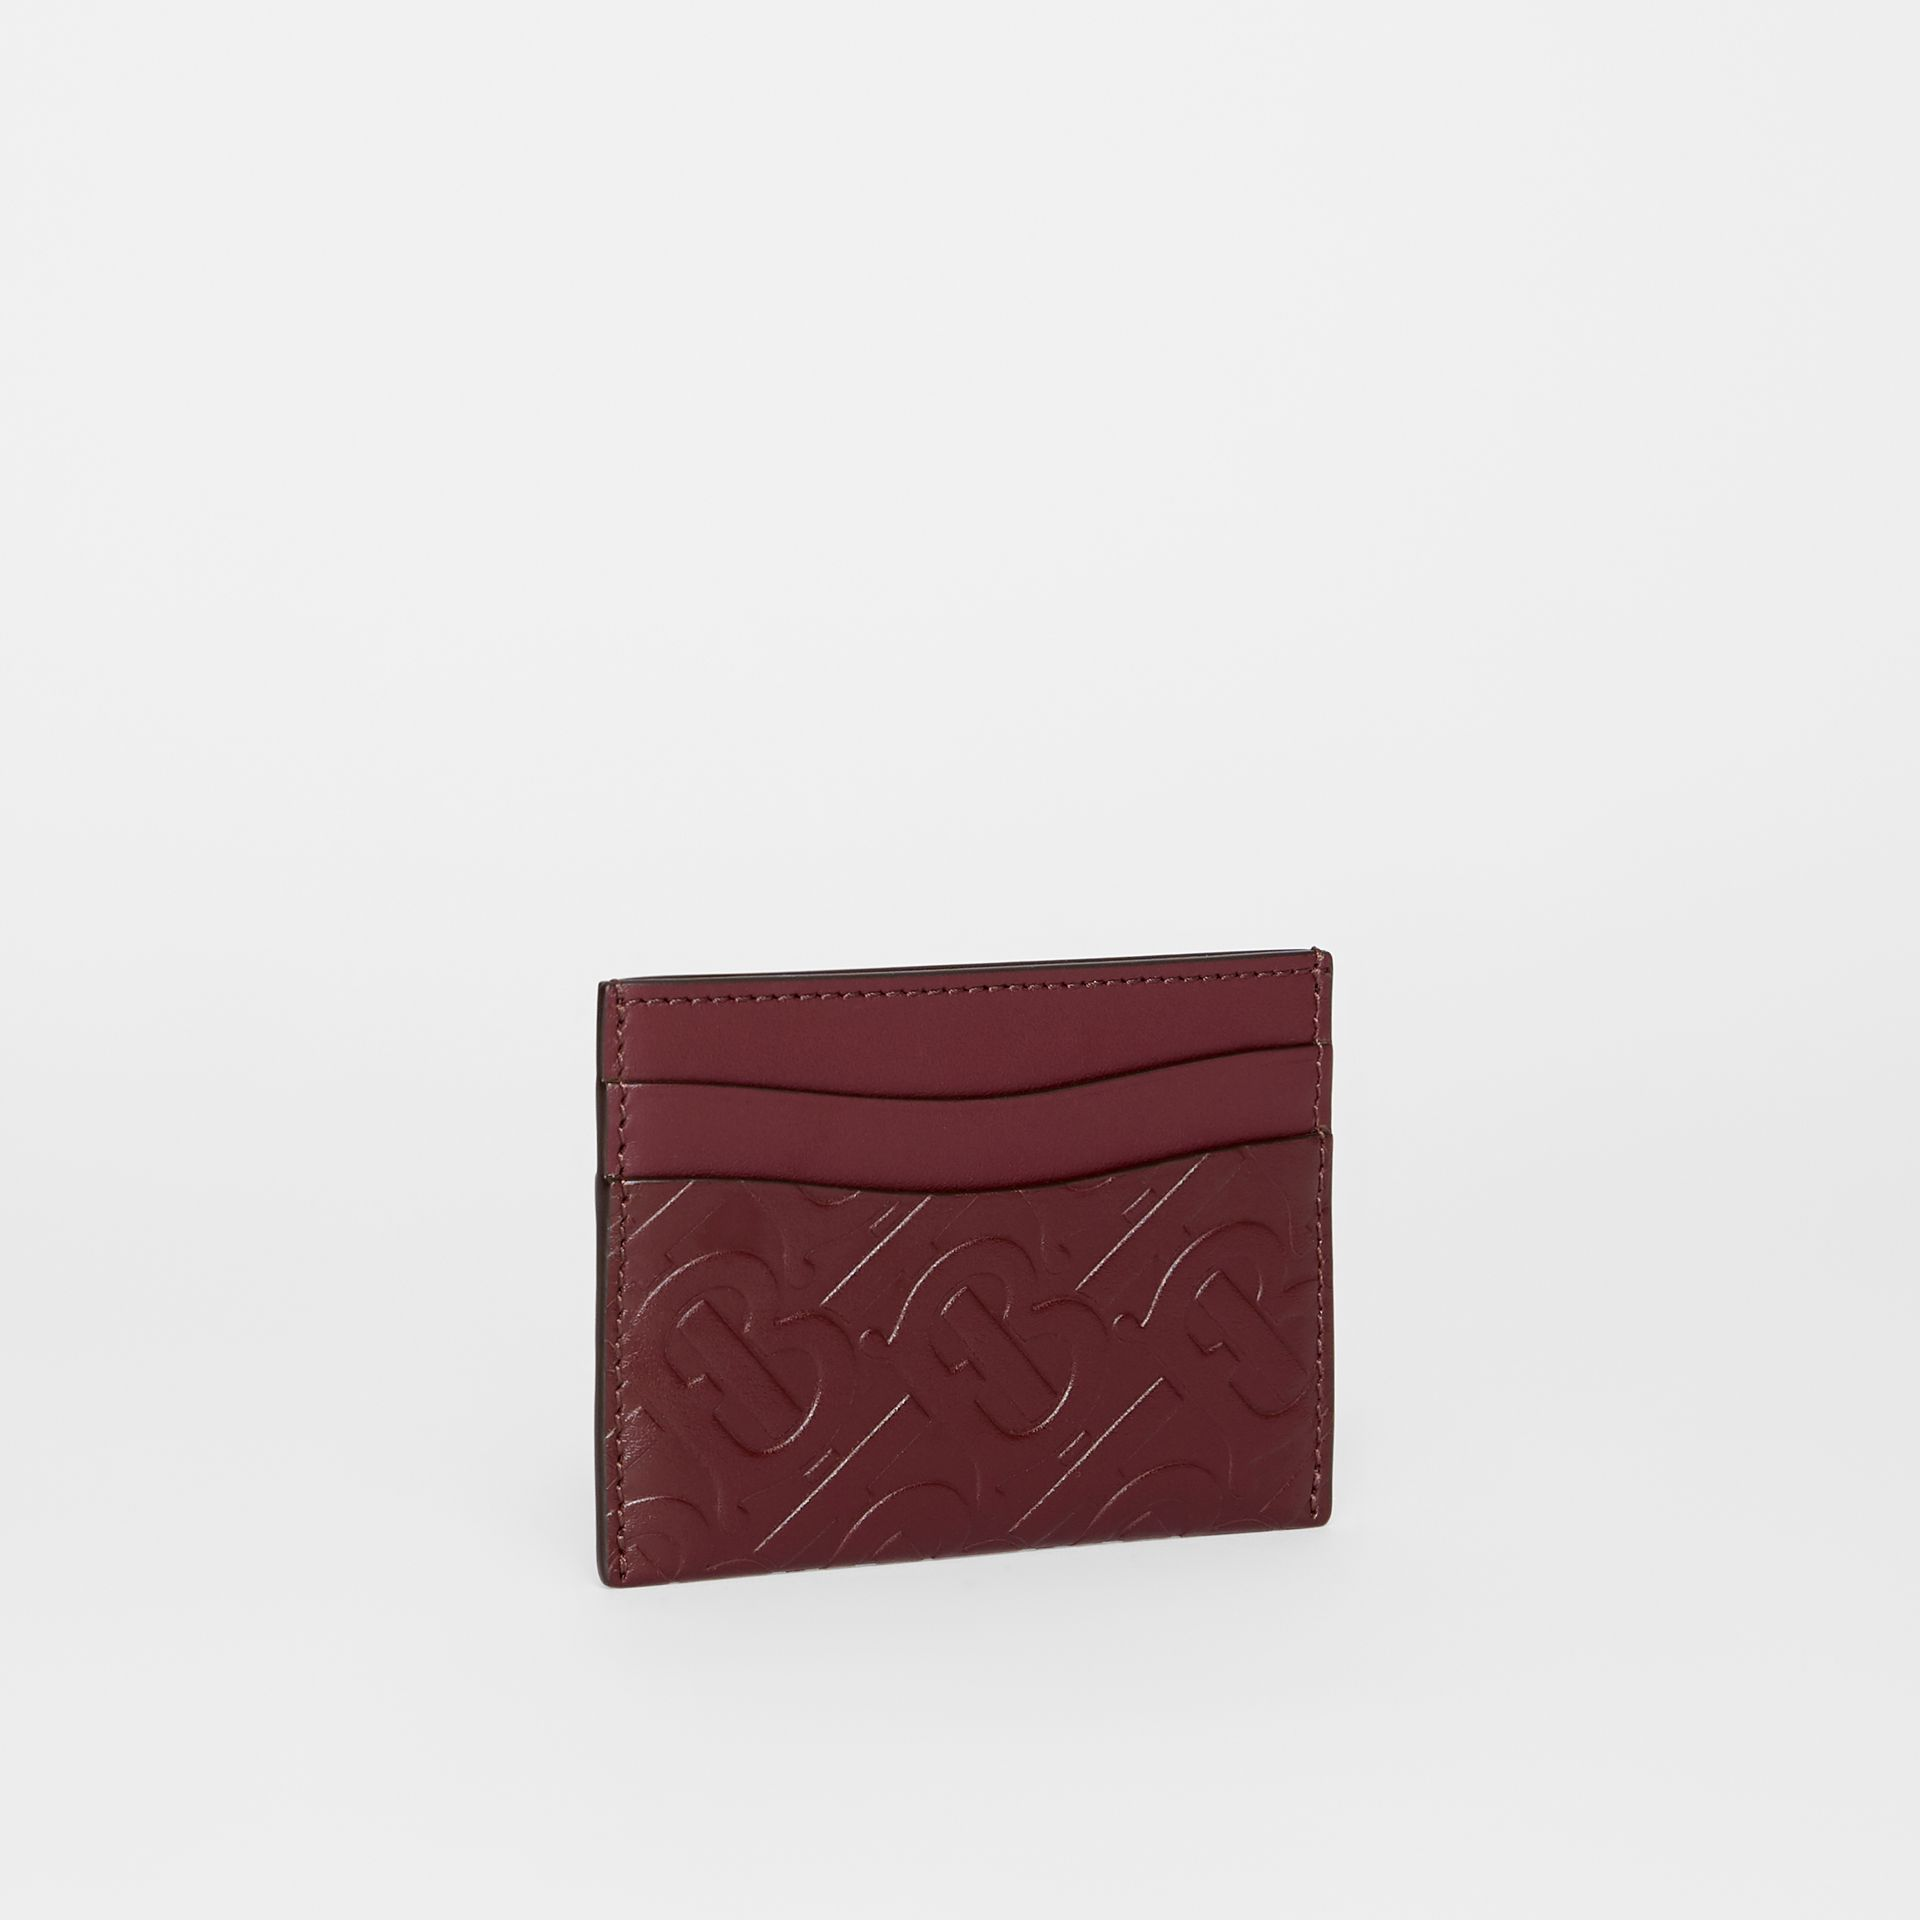 Porte-cartes en cuir Monogram (Oxblood) - Femme | Burberry - photo de la galerie 3